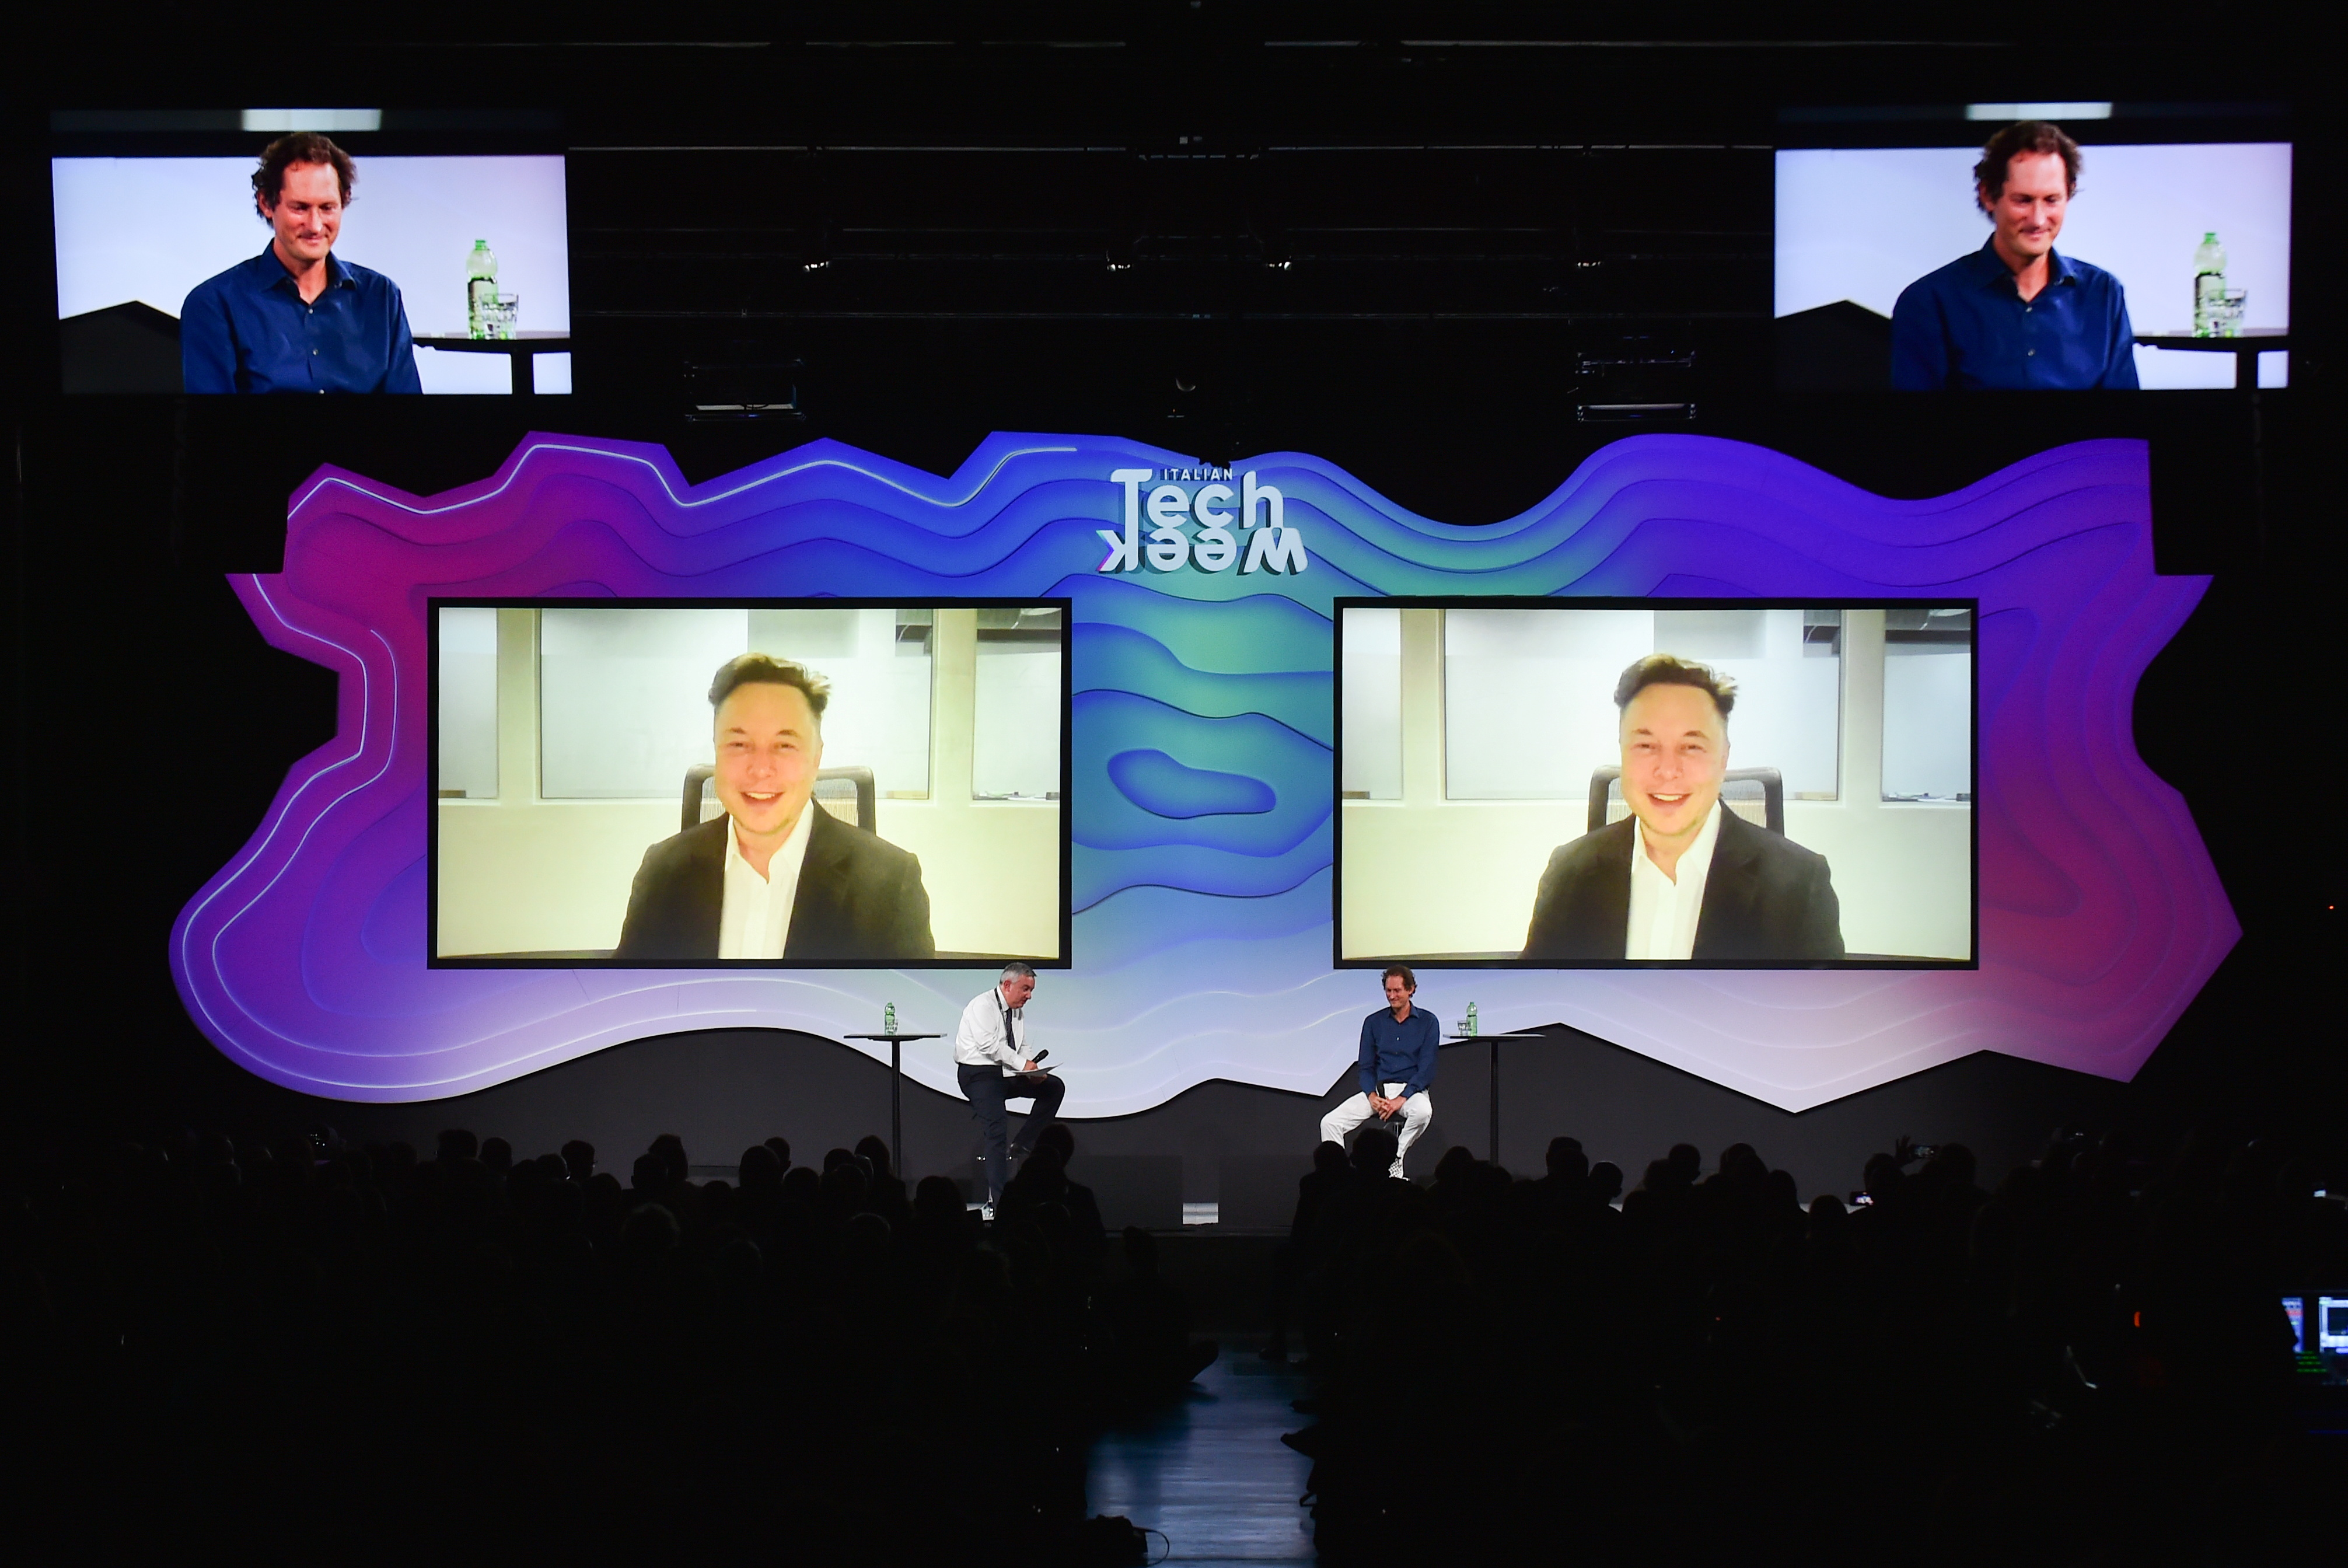 """Chairman of Stellantis and Ferrari John Elkann speaks via video conference with Tesla's founder Elon Musk during the """"Italian Tech Week"""" event in Turin, Italy September 24, 2021. REUTERS/Massimo Pinca"""